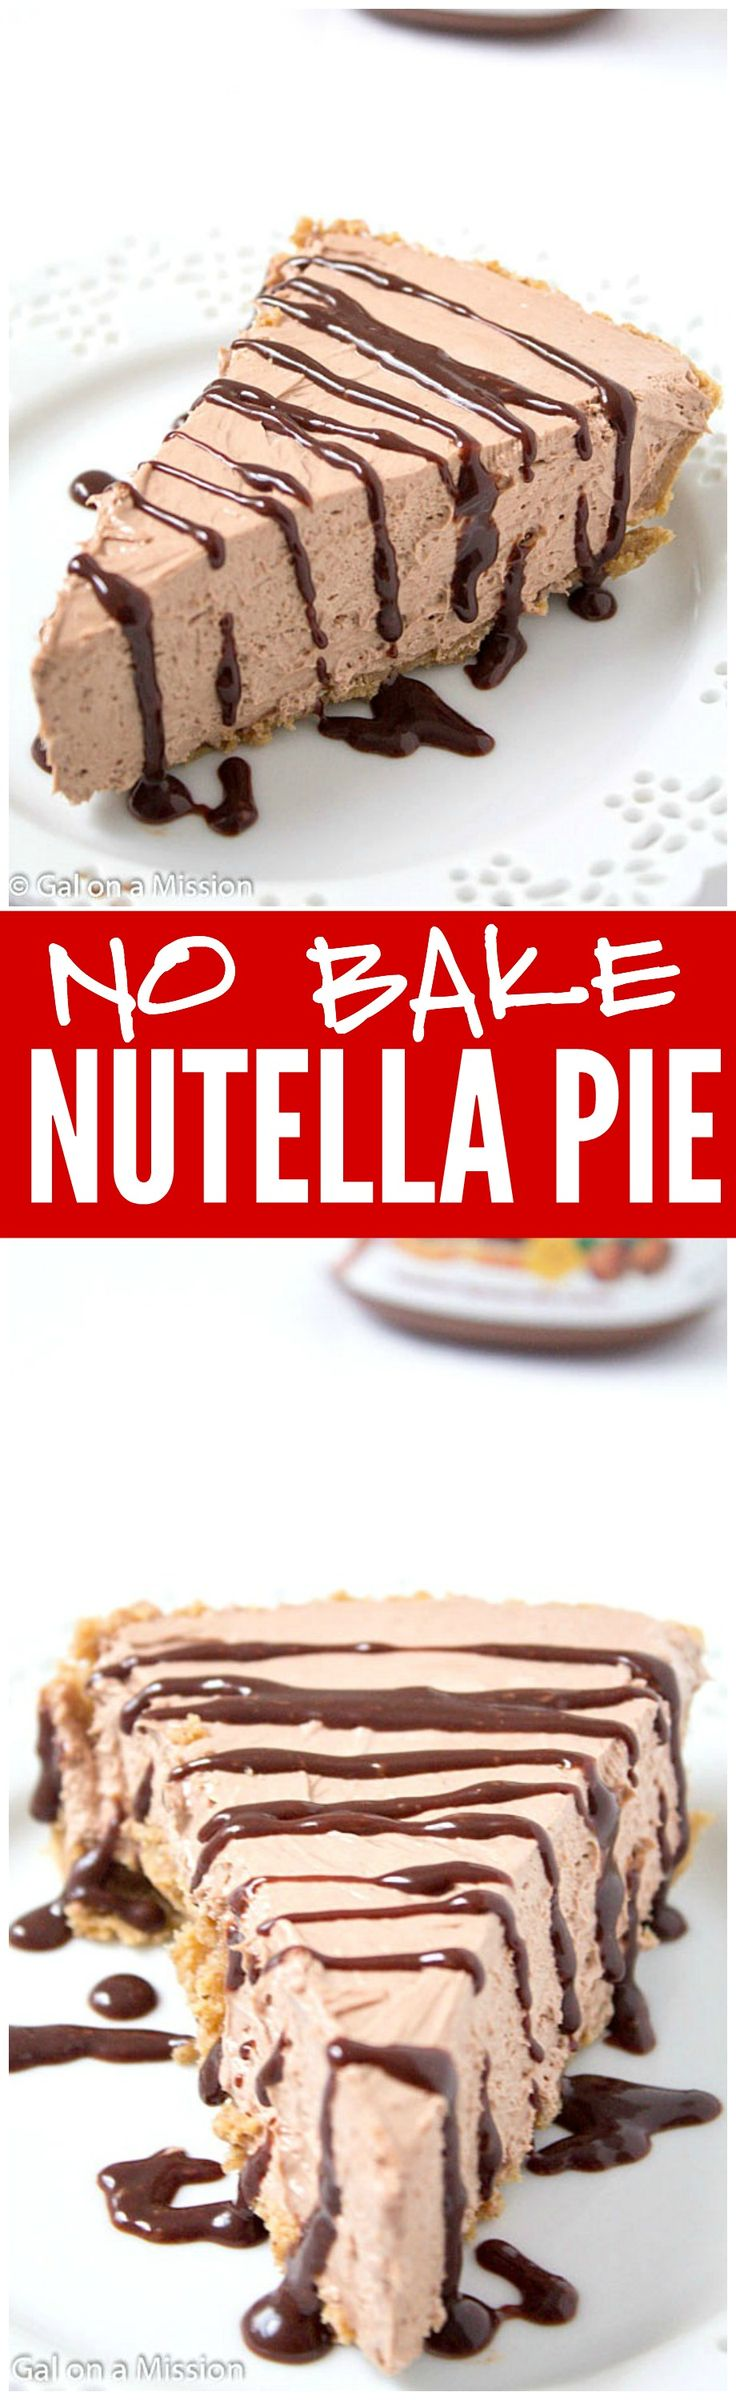 Everything about this Nutella Pie is No BAKE!! So rich, creamy and decadent and sure to be a hit!